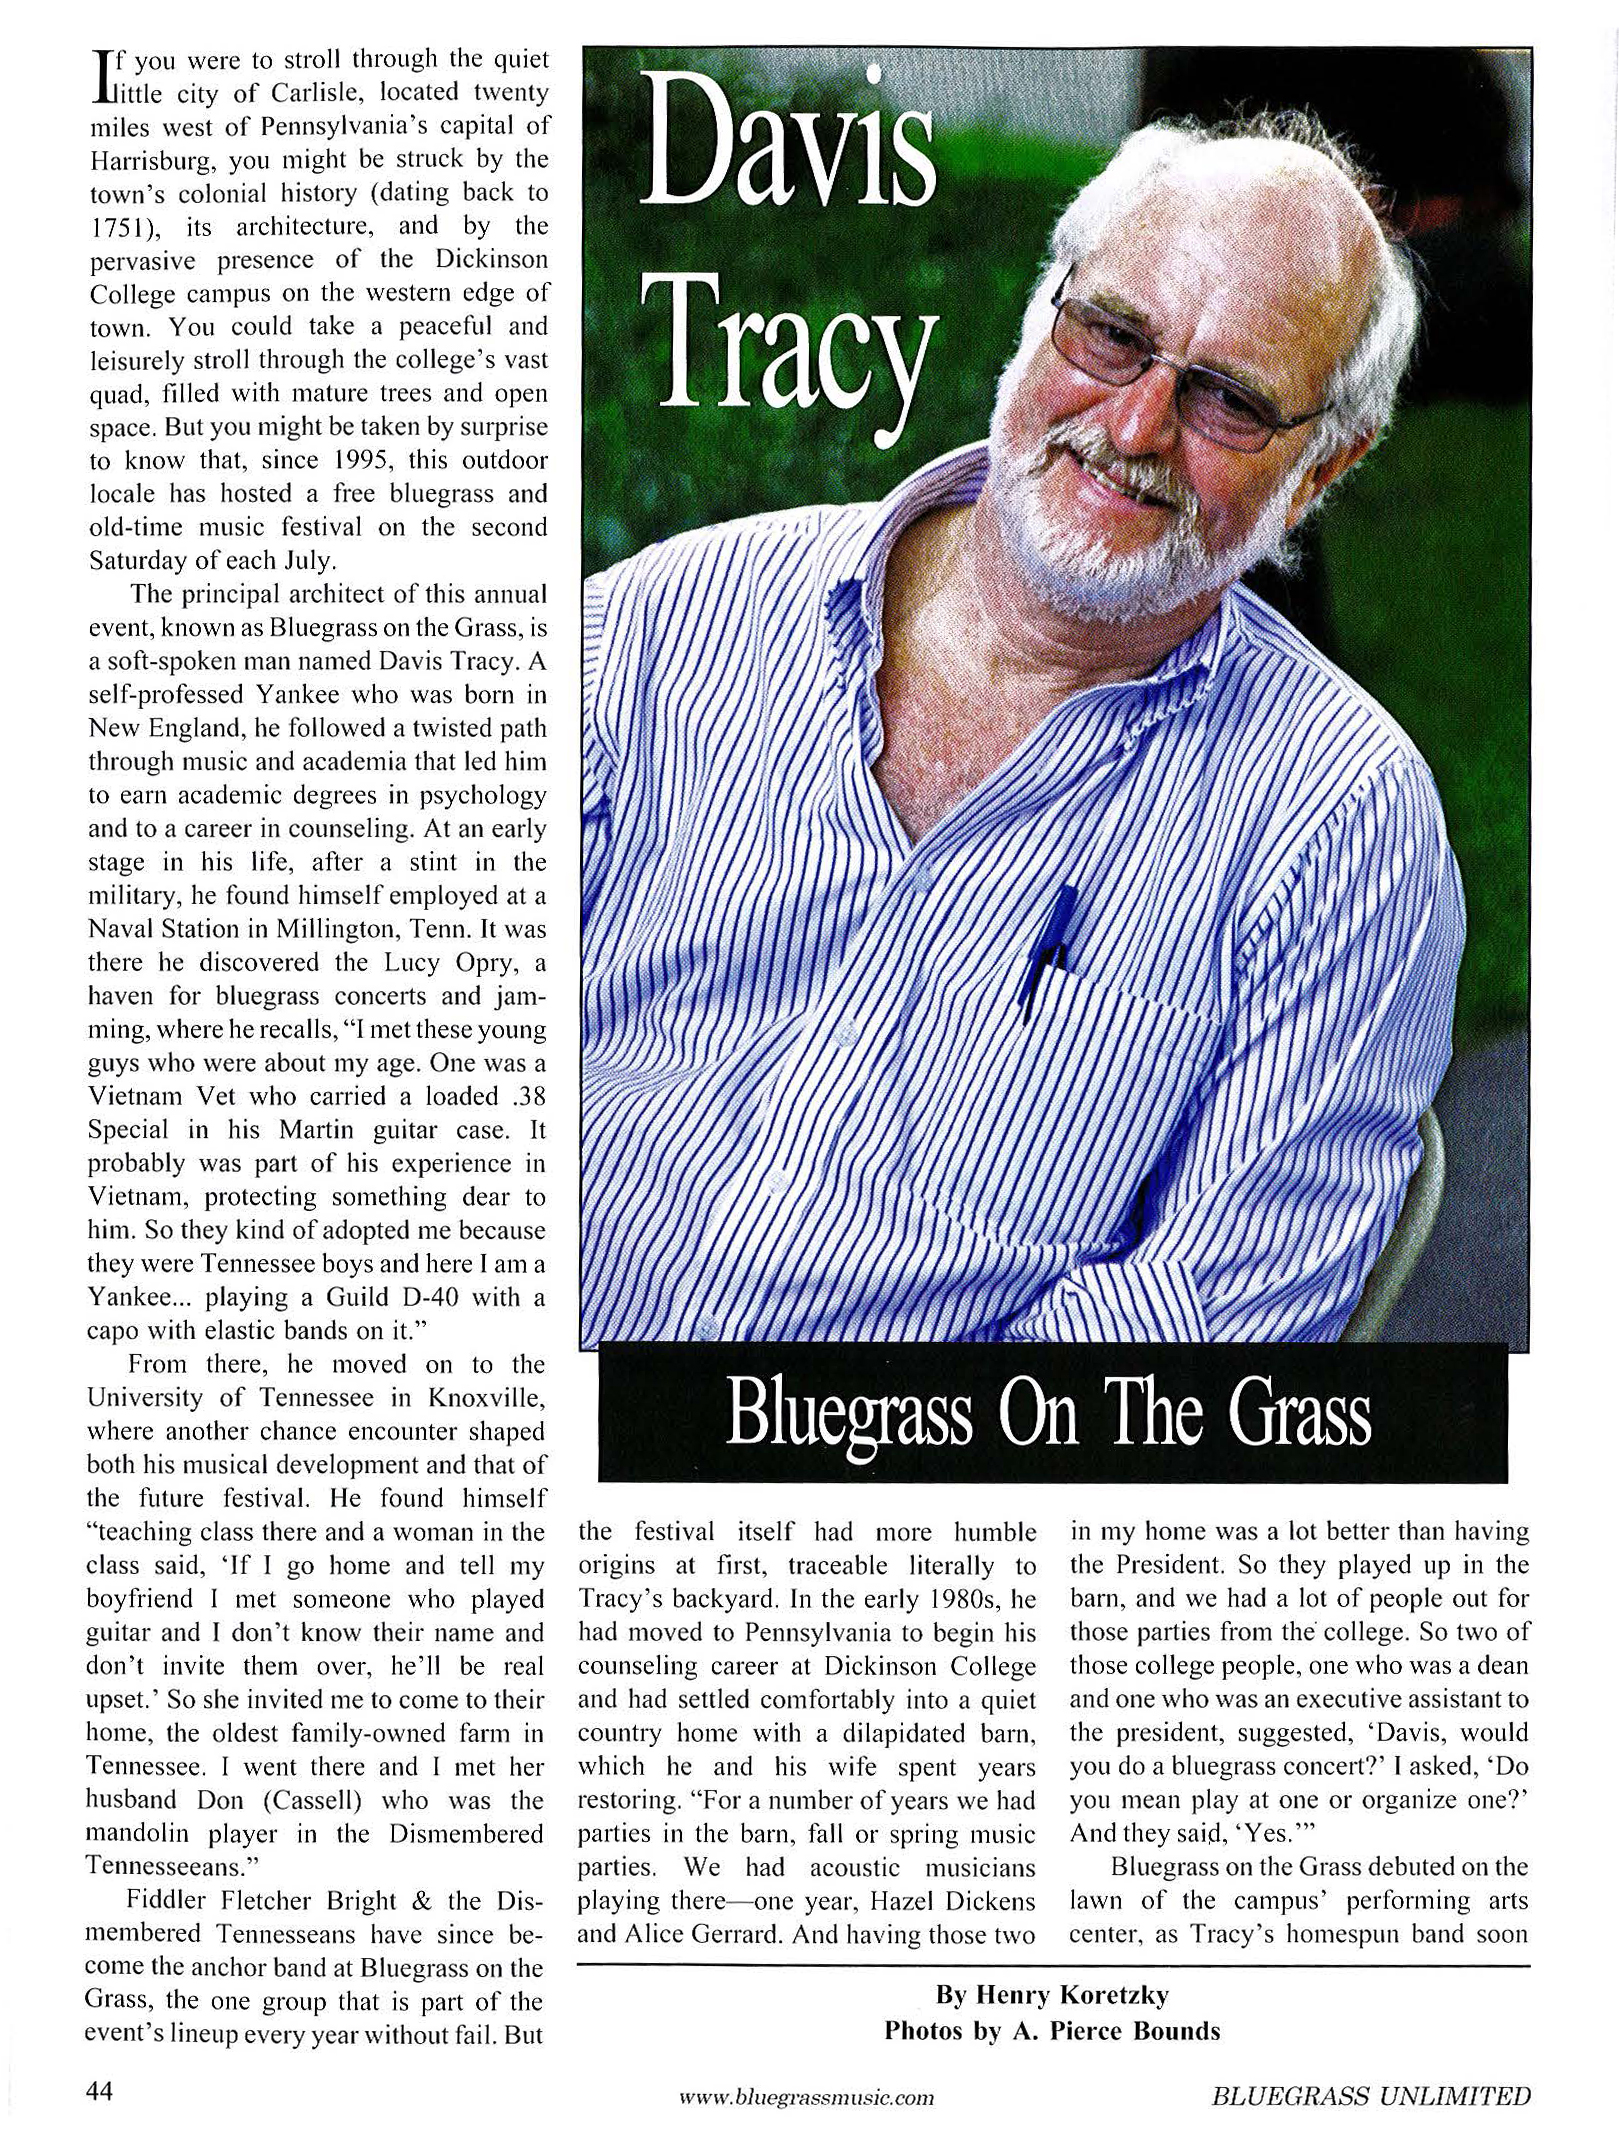 Bluegrass Unlimited - Bluegrass on the Grass - January 2013 - page 1